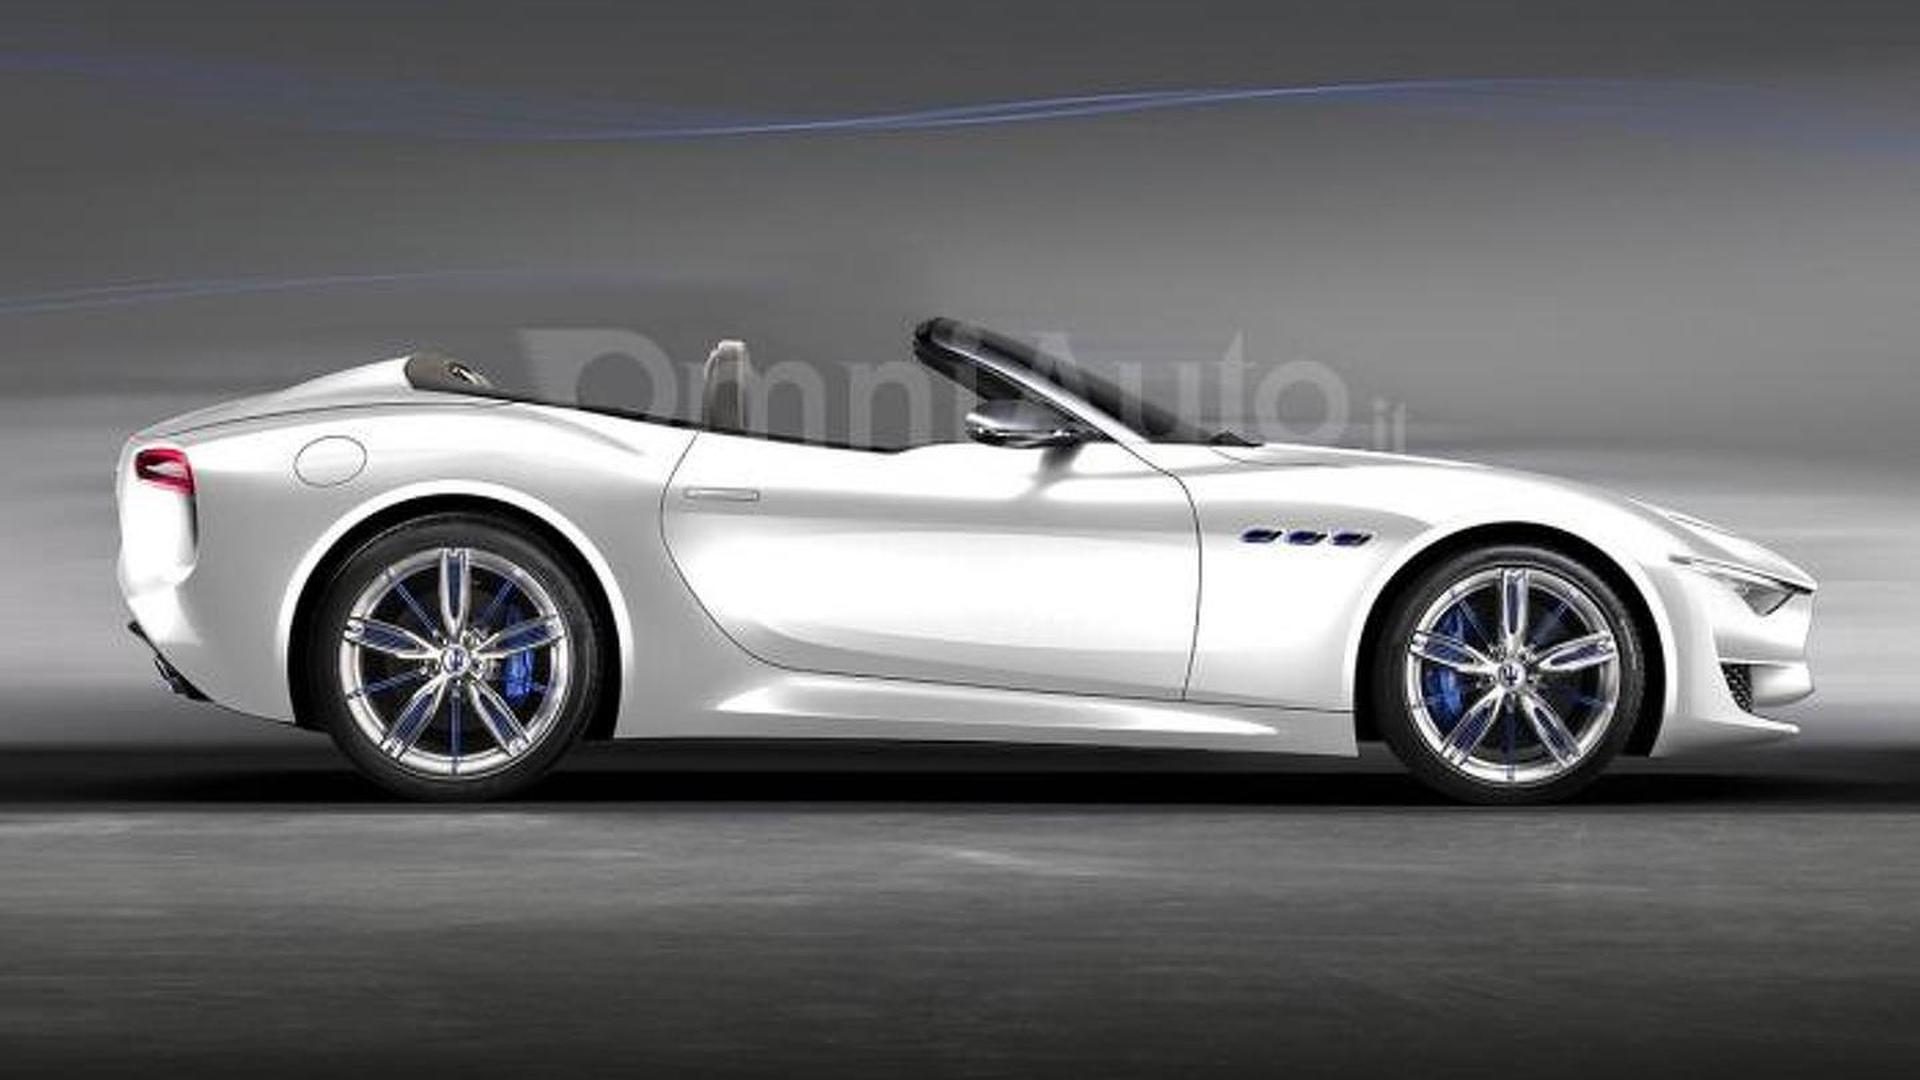 Maserati Alfieri concept loses its roof in new render